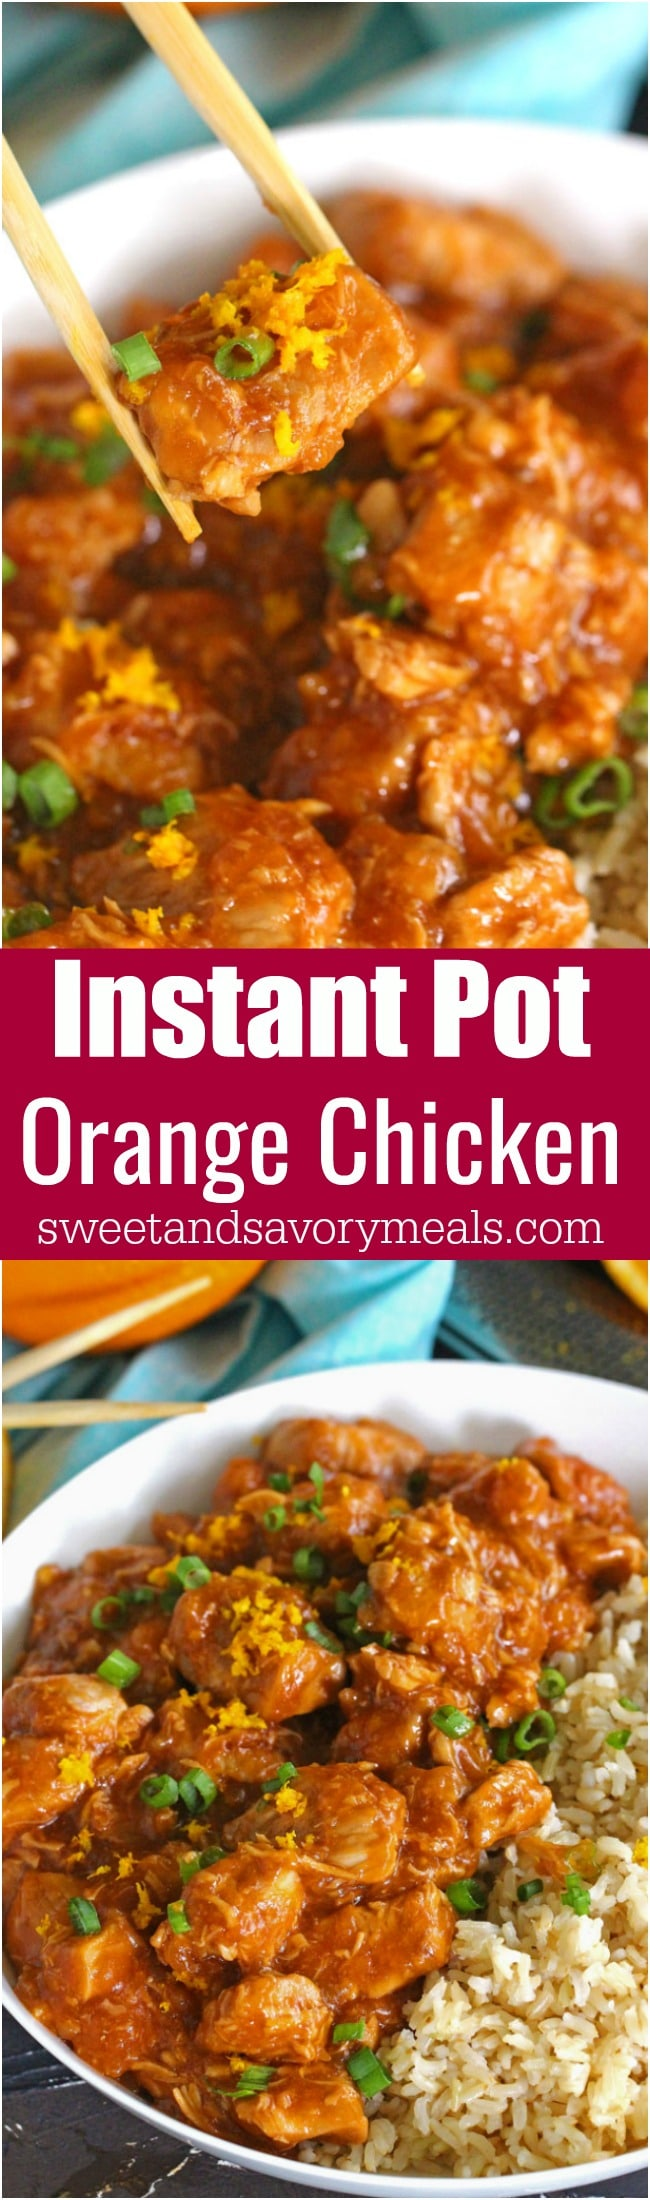 Instant pot orange chicken 30 minutes sweet and savory meals instant pot orange chicken is healthier than takeout and easy to make using your instant pot forumfinder